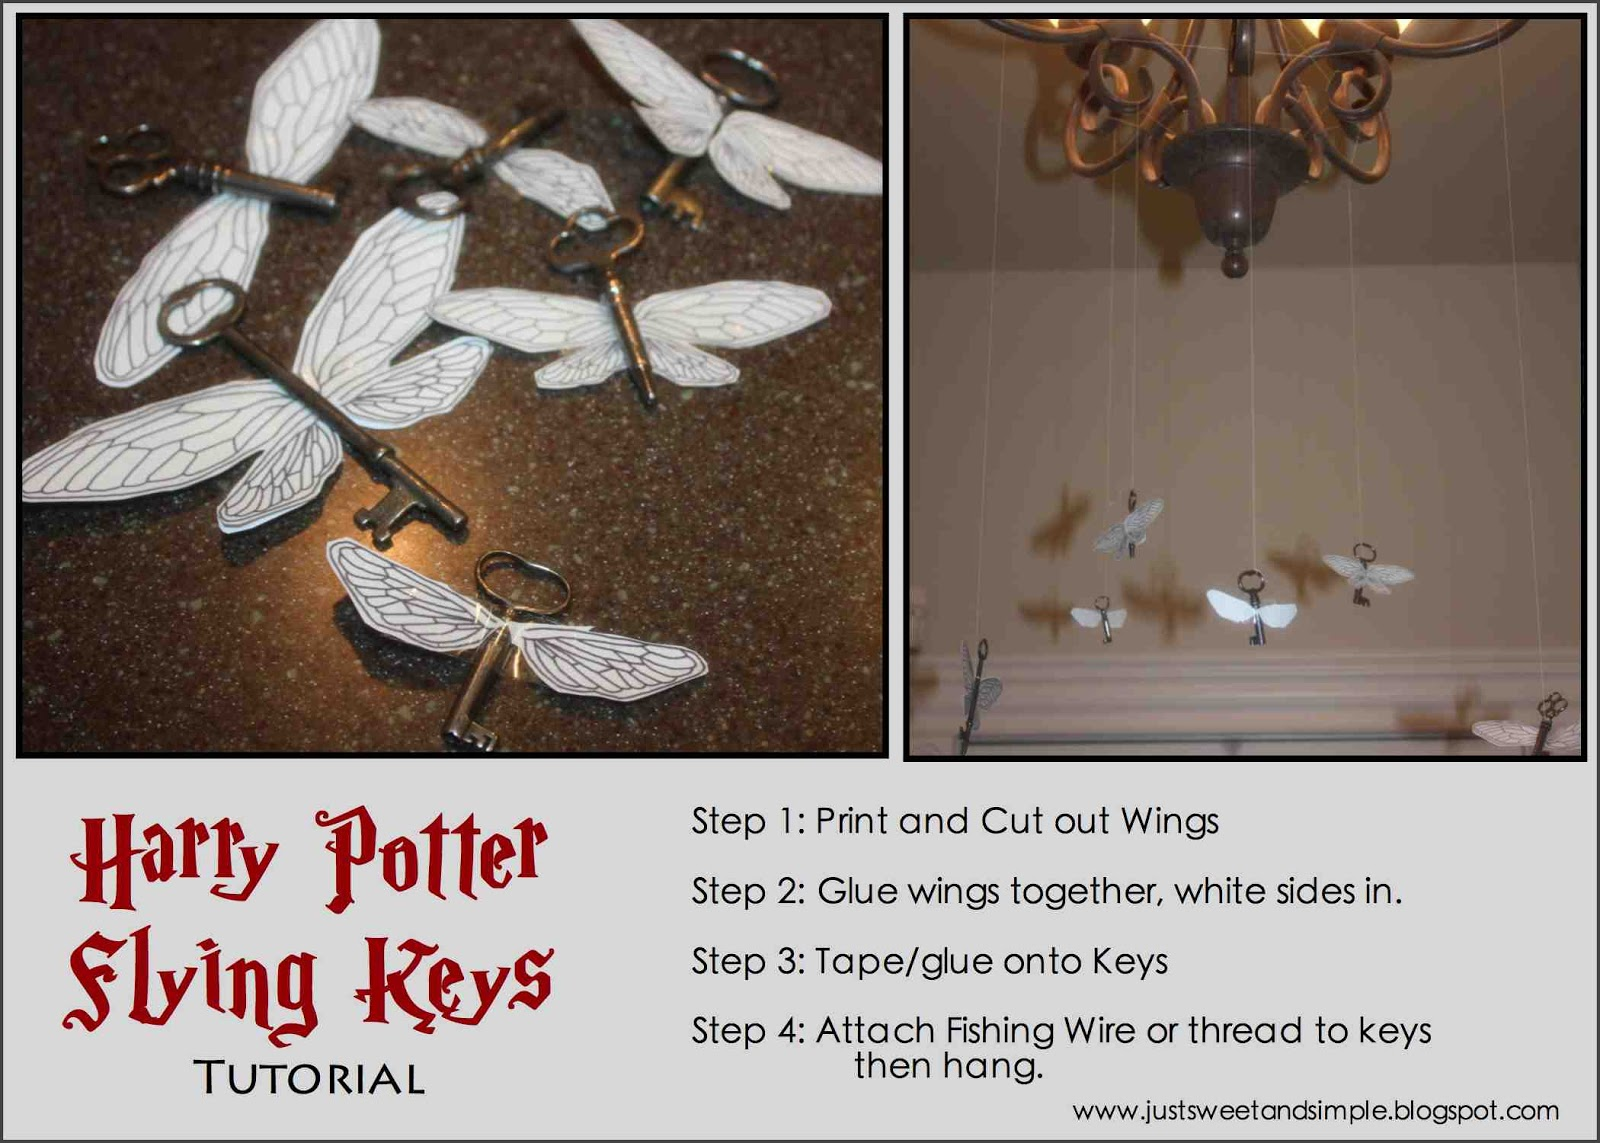 just Sweet and Simple: Harry Potter Flying Key Tutorial